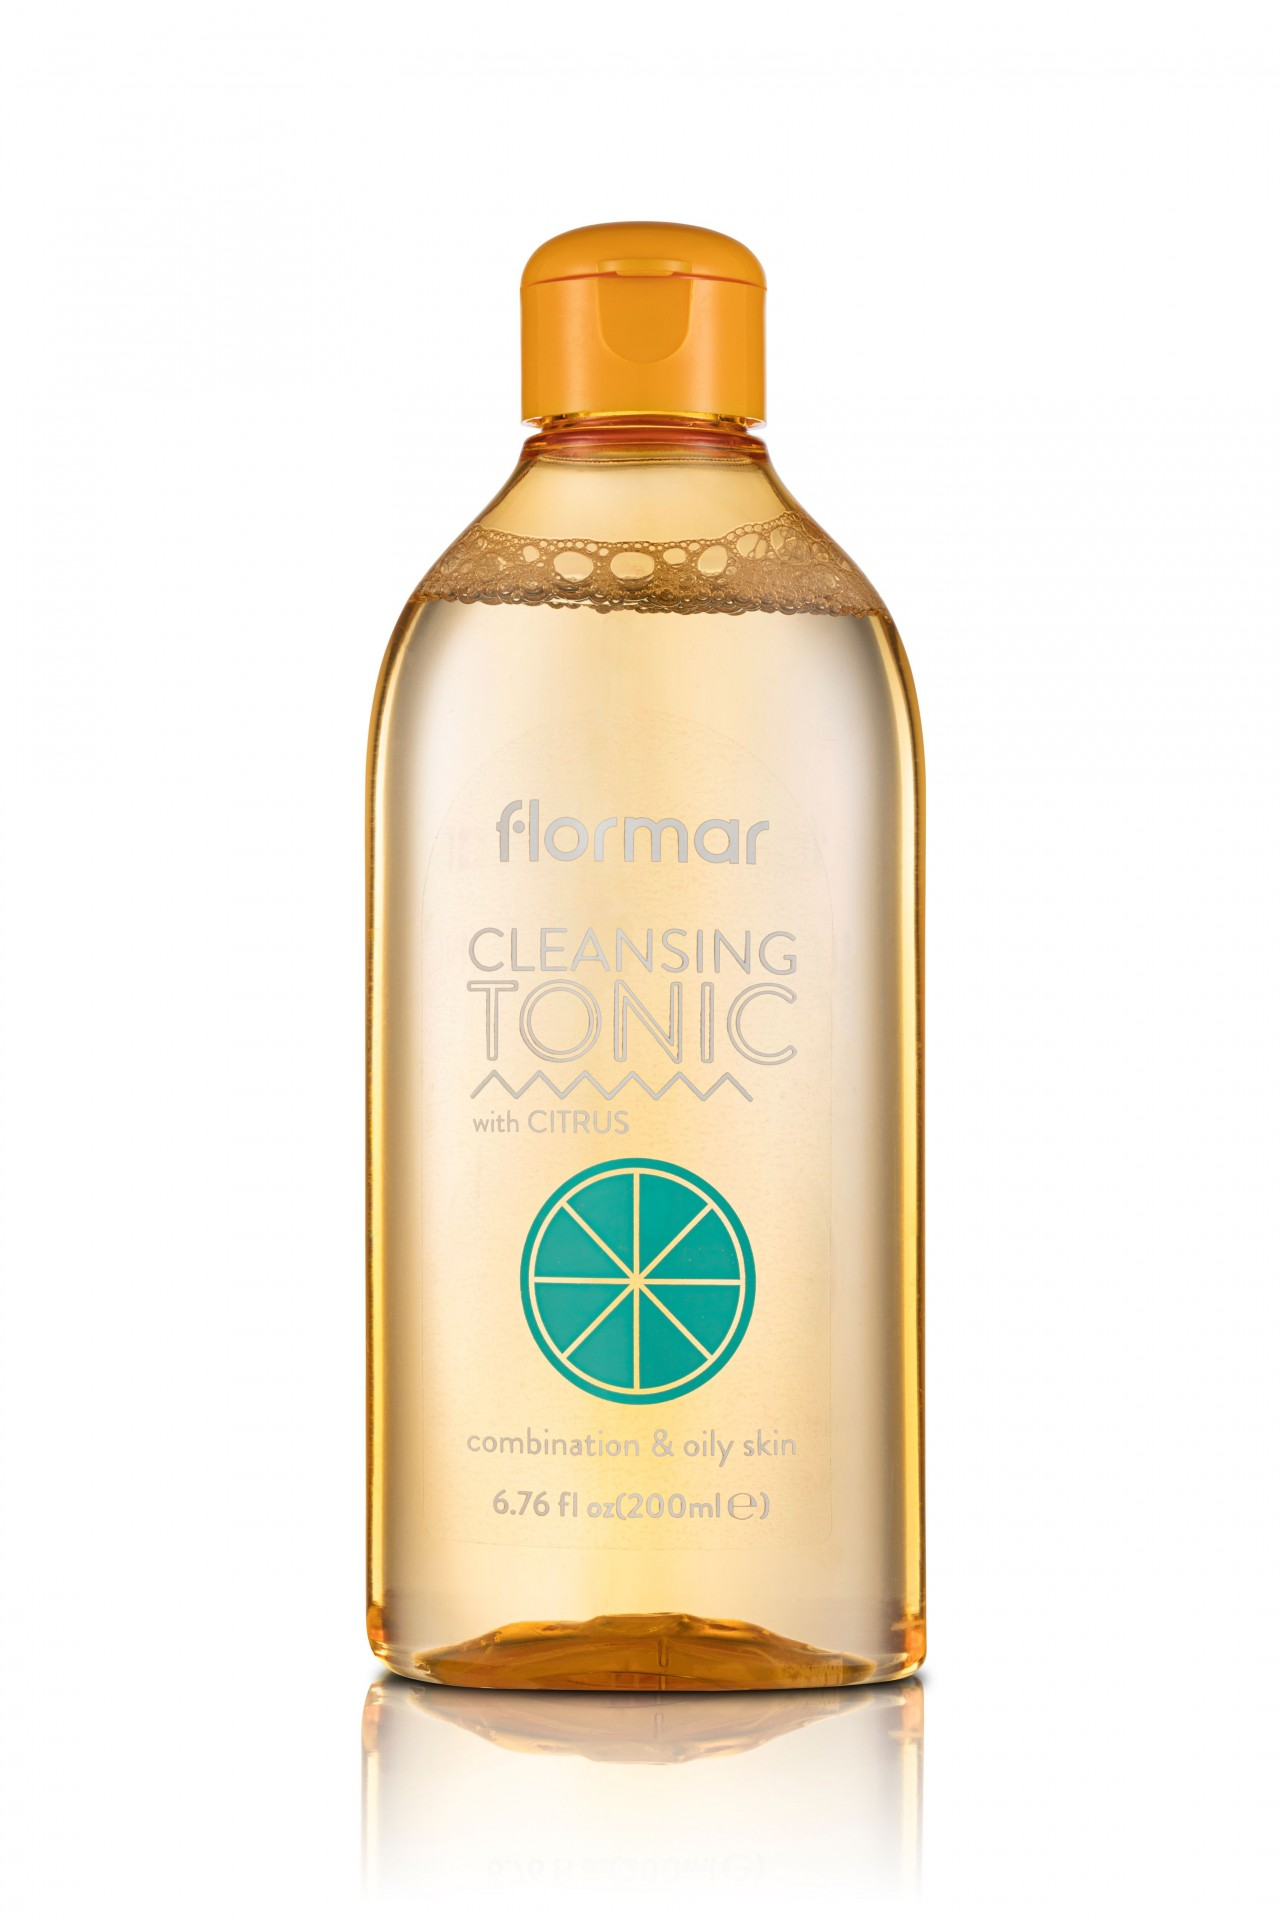 FLORMAR - CLEANSING TONIC - CITRUS